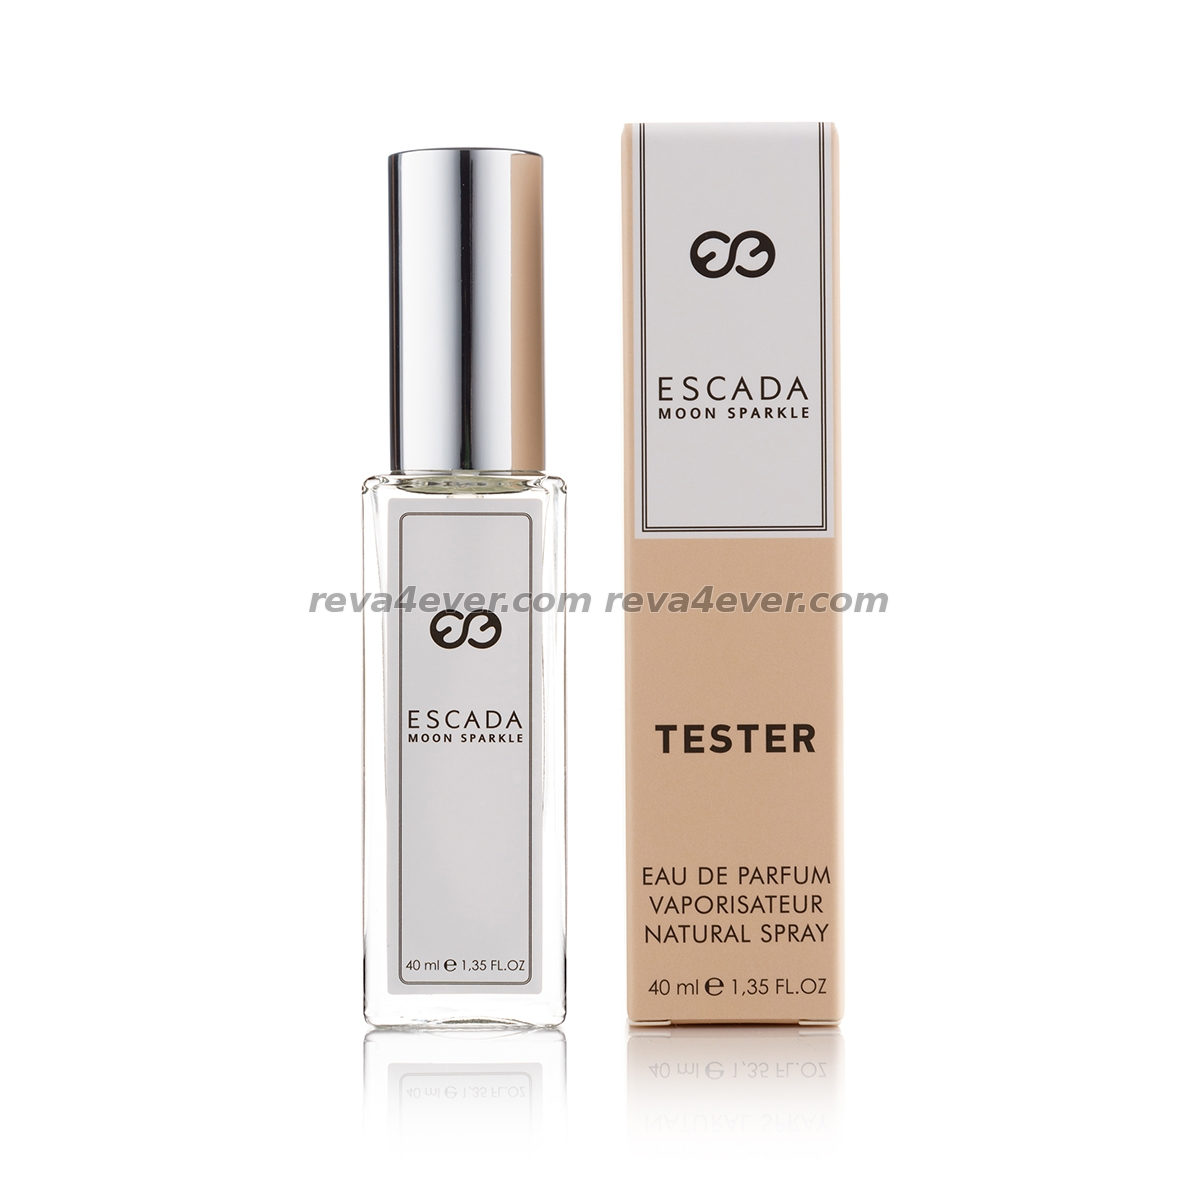 Escada Moon Sparkle edp 40 ml tester бежевая упаковка